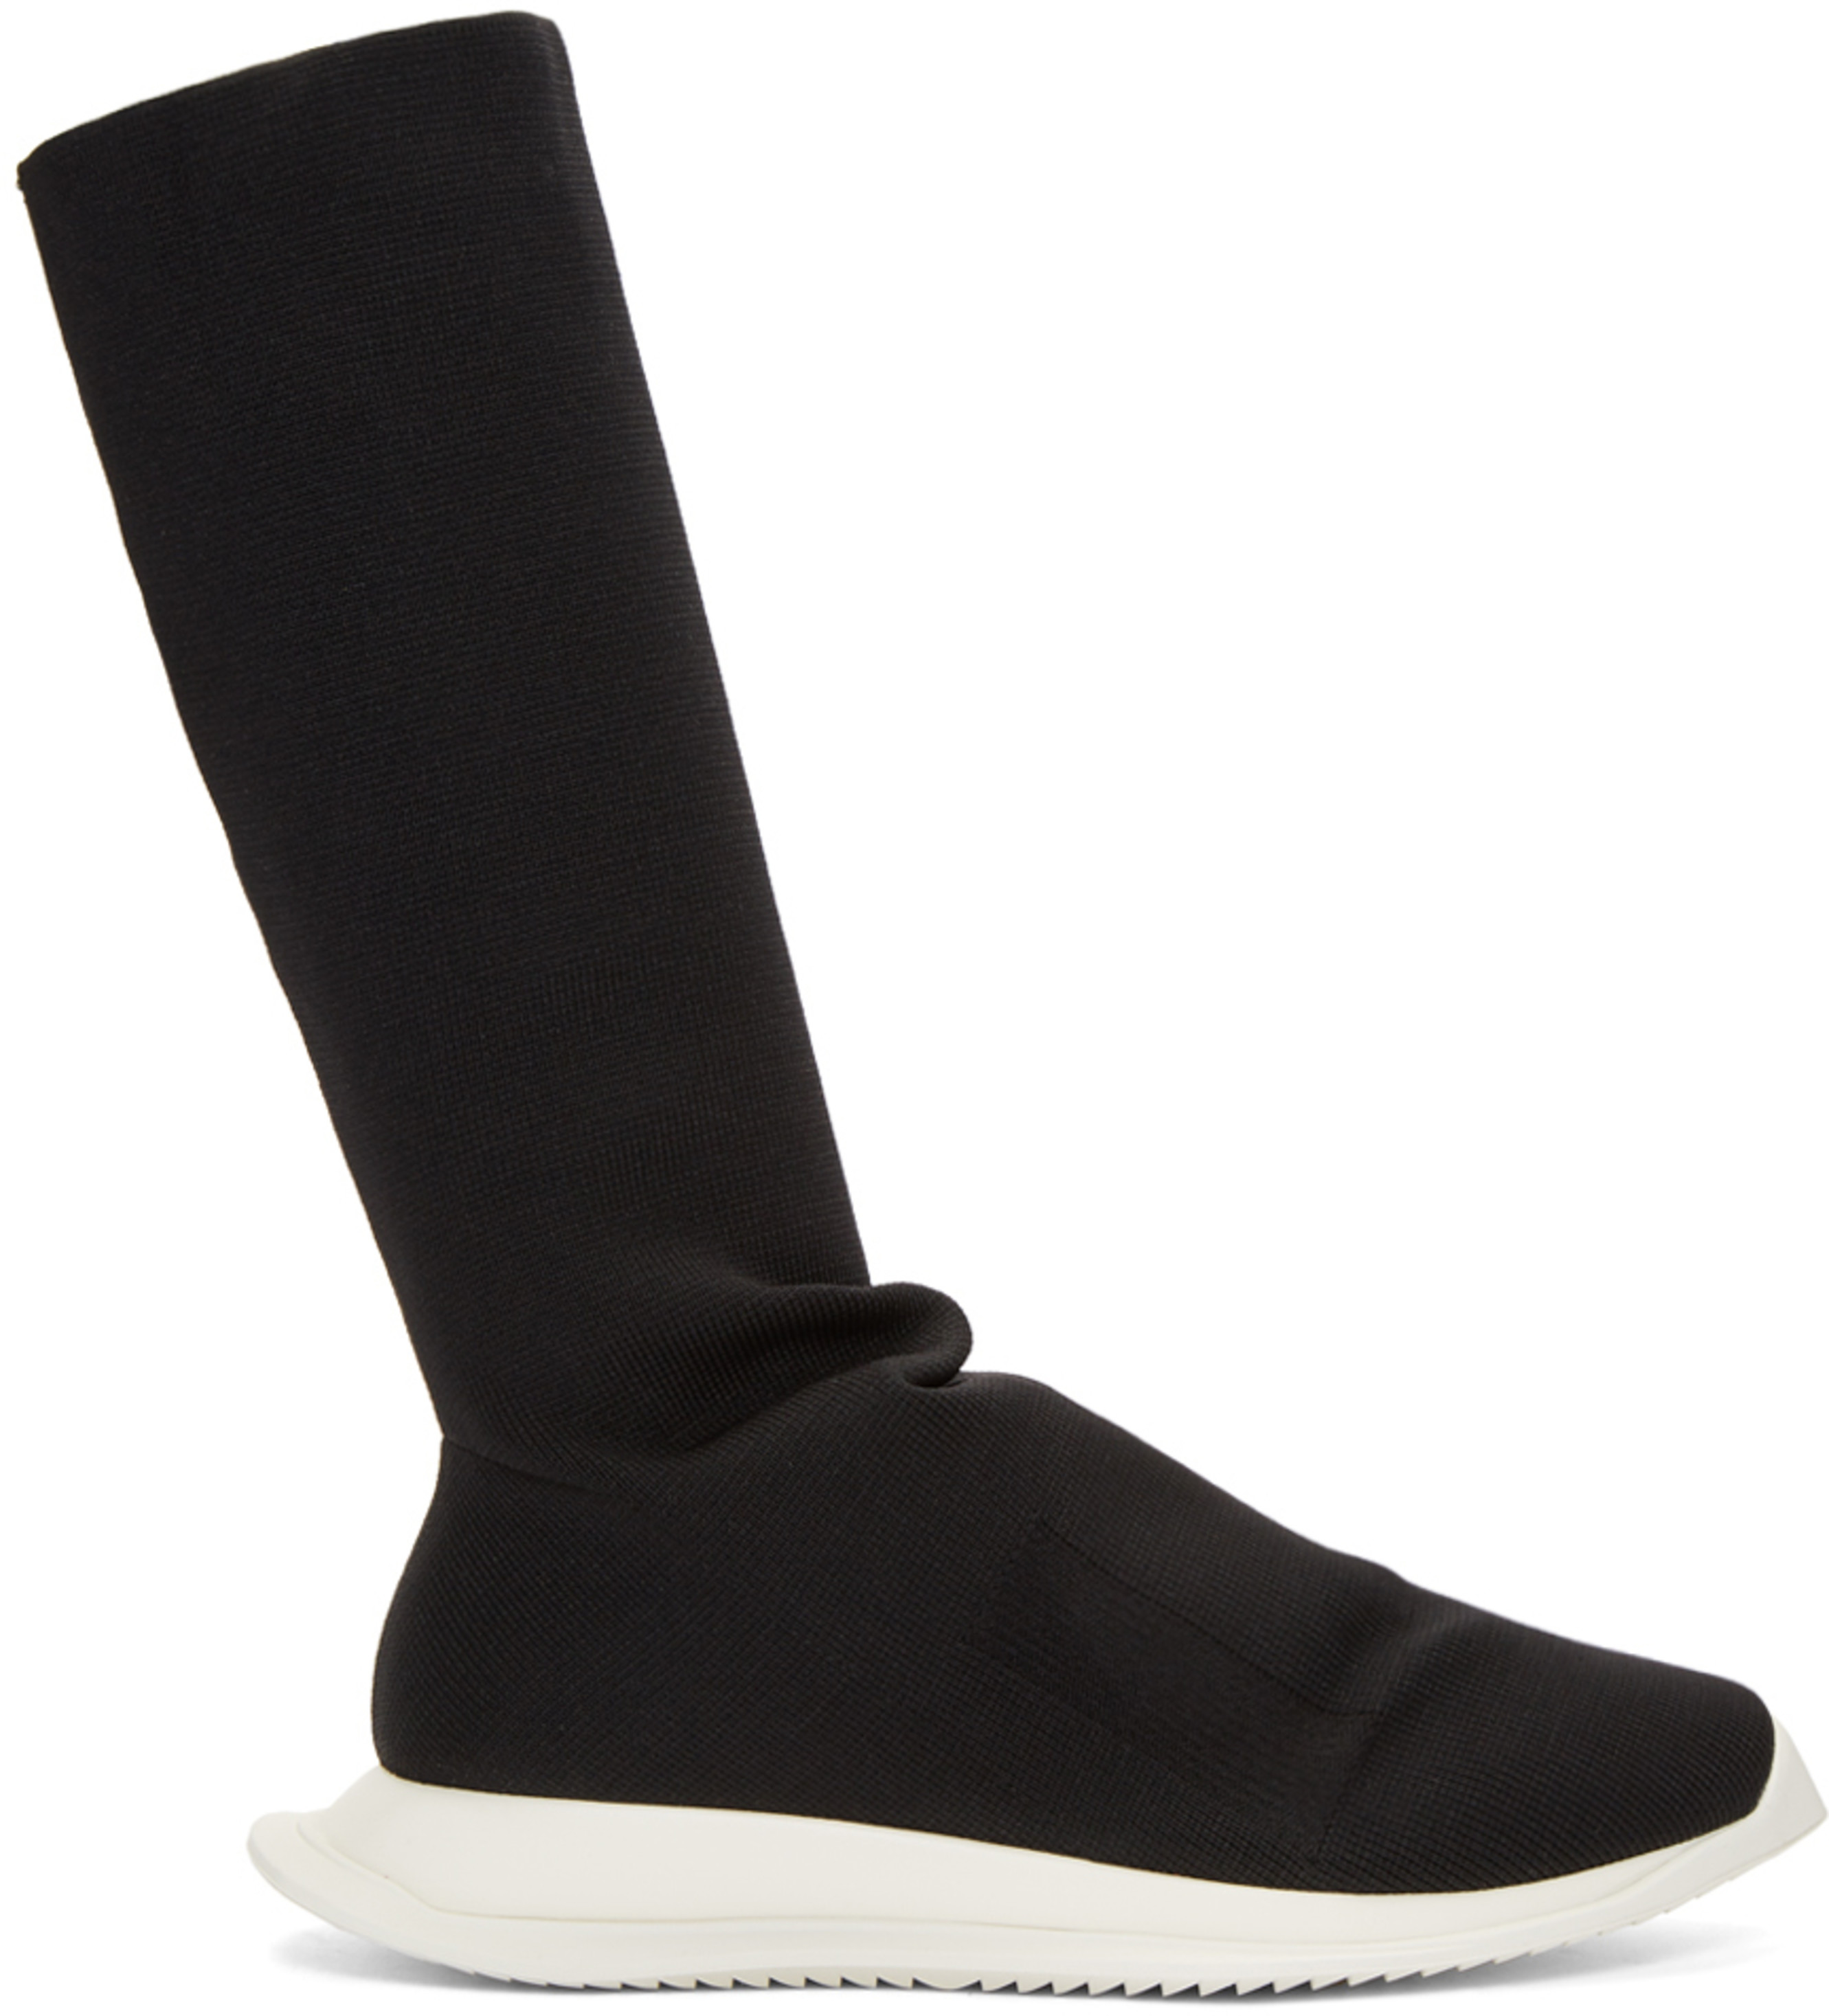 1aacd1690ed Rick Owens Drkshdw for Men SS19 Collection